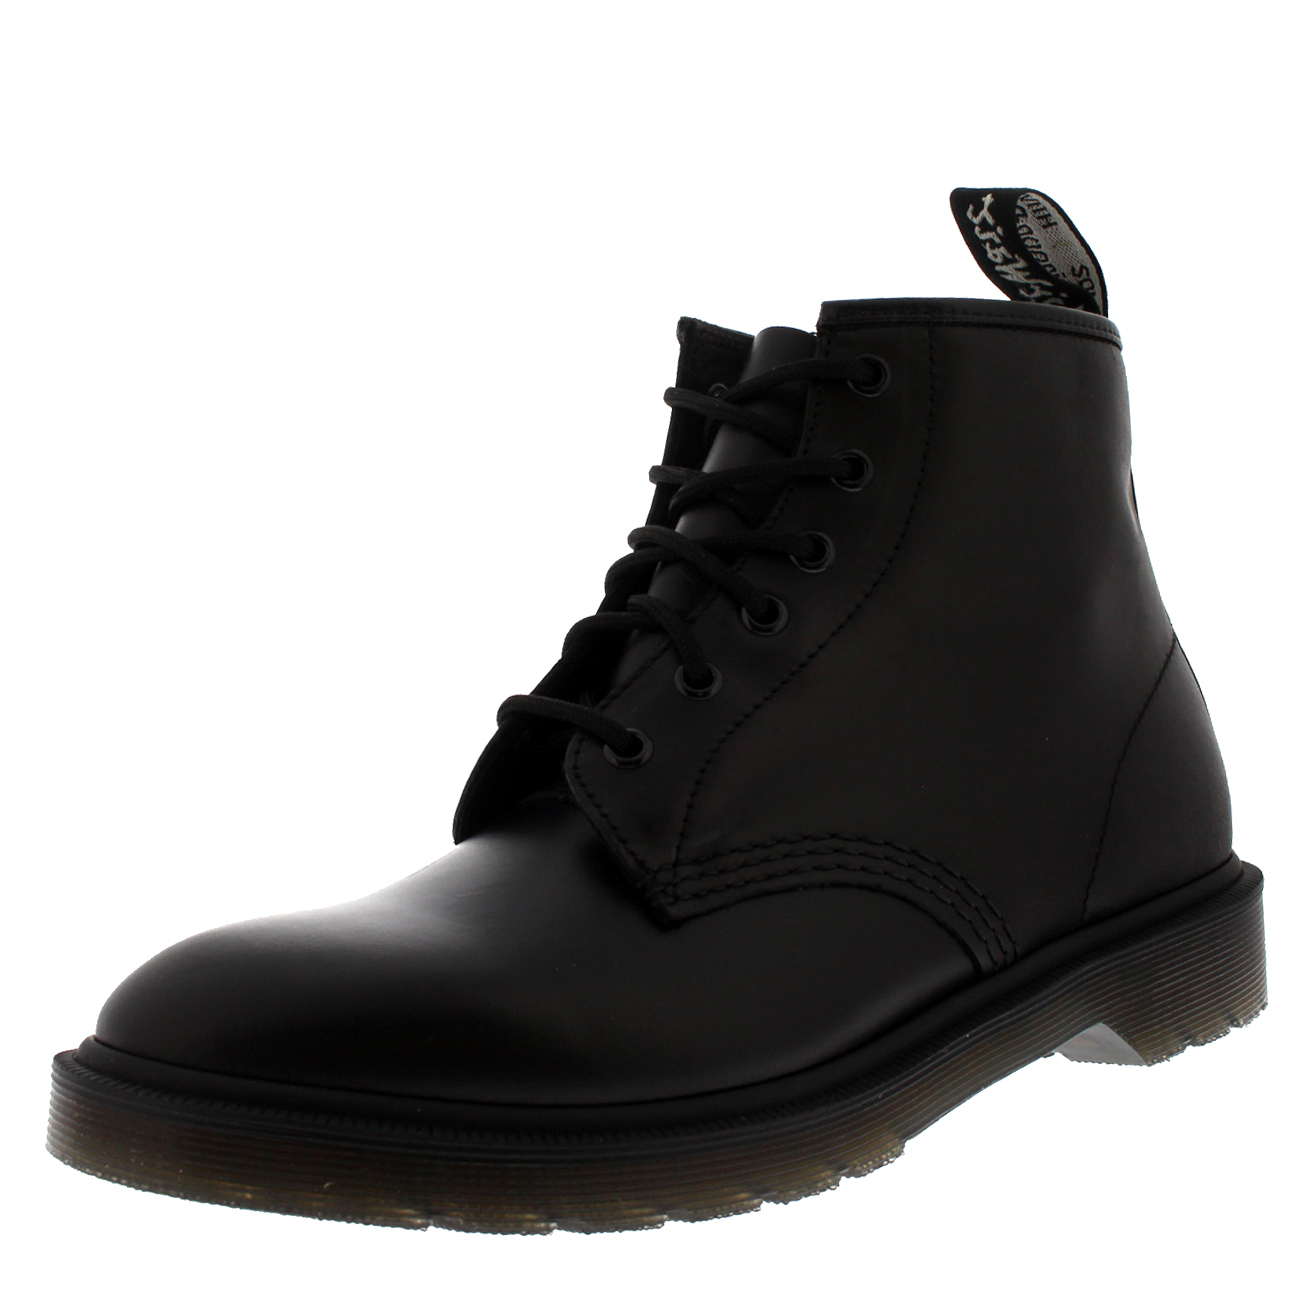 Unisex Adults Dr Martens 101 Br Smooth